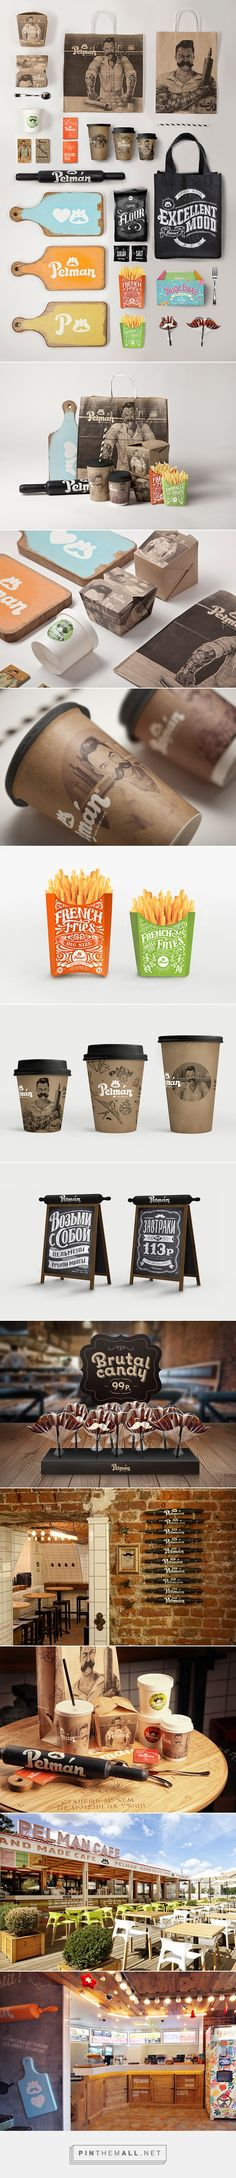 Cafe Branding: 'Pelman Handmade Cafe' by G-Sign curated by Packaging Diva PD.  I liked this #packaging #branding so much I got the rest of the story. Well, almost : ) created via http://inspirationhut.net/inspiration/cafe-branding-pelman-handmade-cafe-g-sign/